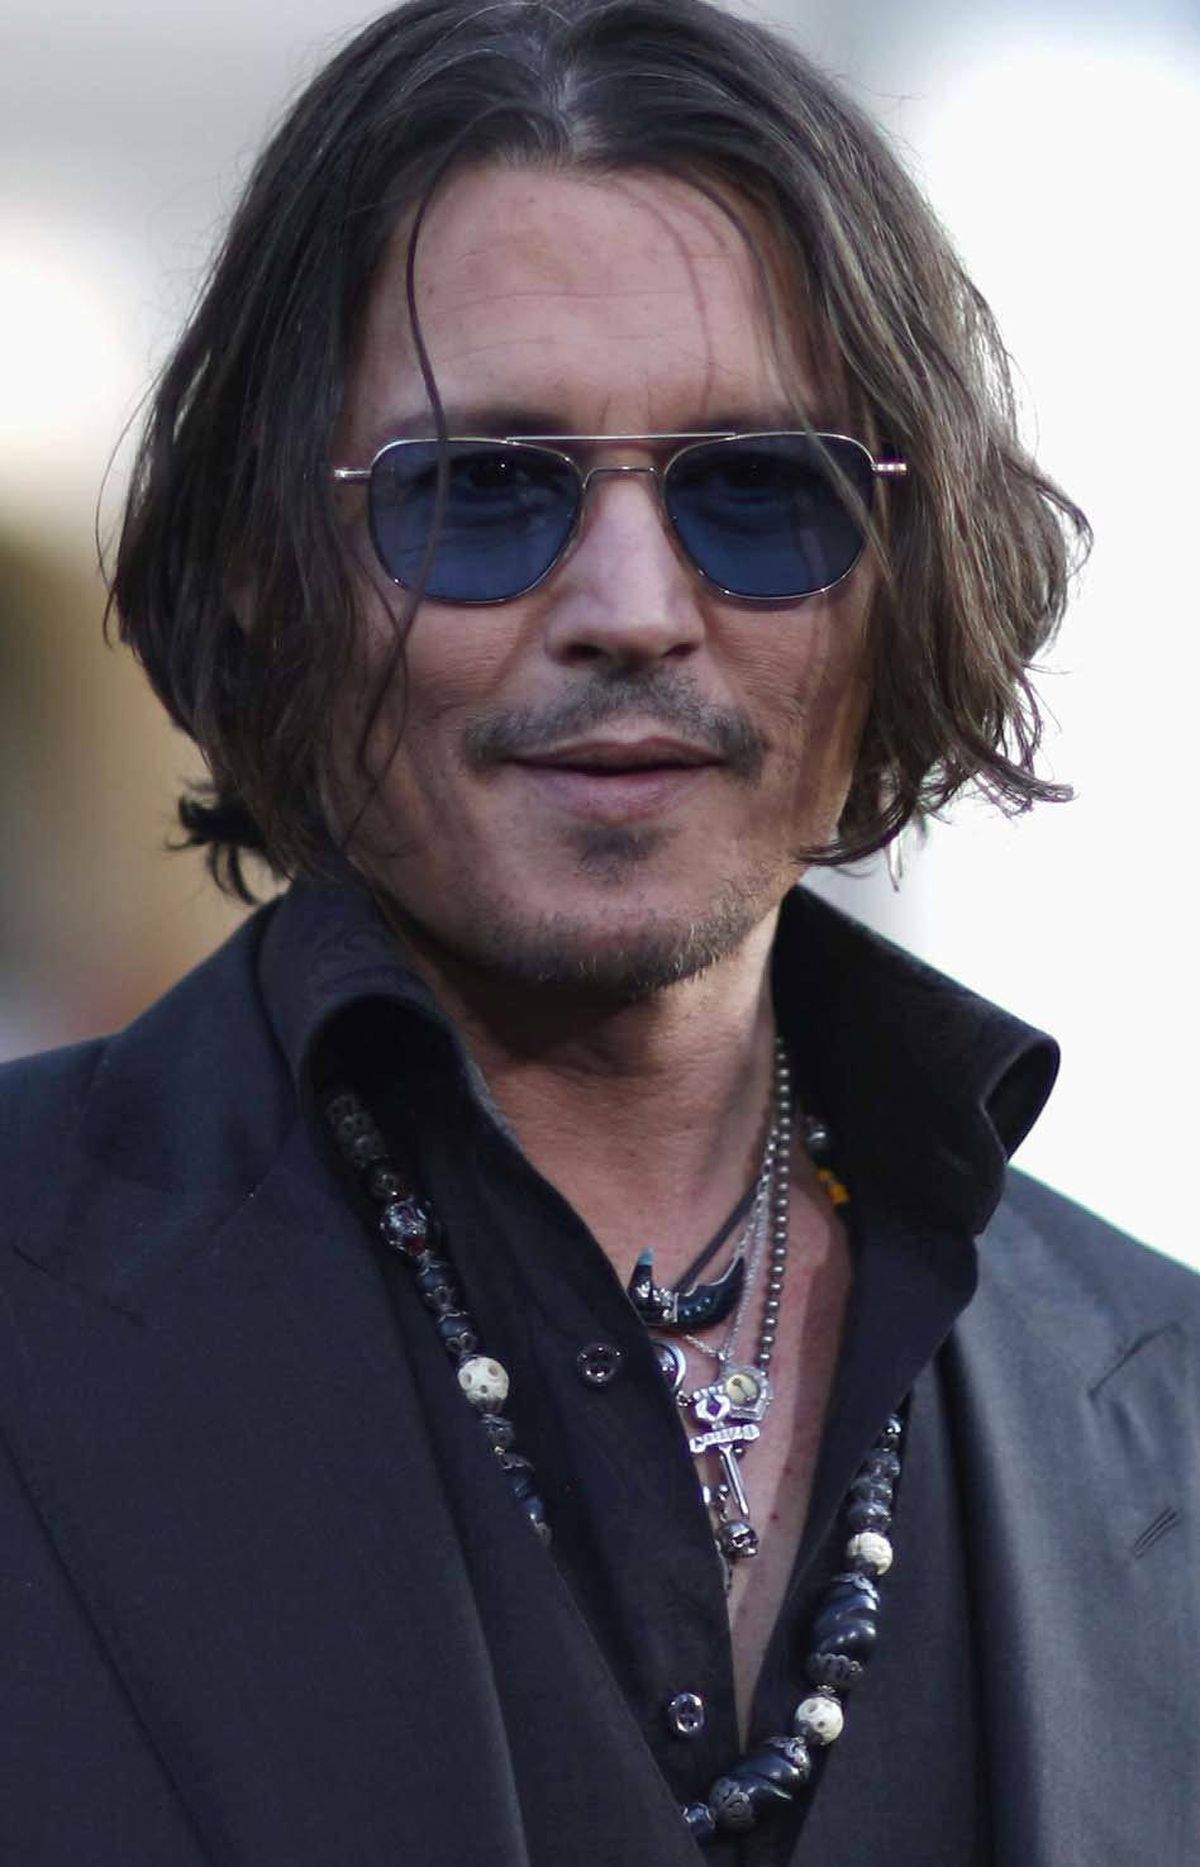 And now for a quick man-bangles contest featuring Johnny Depp vs. Steven Tyler of Aerosmith, I mean American Idol. Depp sports wooden beads, what appears to be a tiny sideways dagger, a skull and some sort of key. There are at least five different necklaces in play.